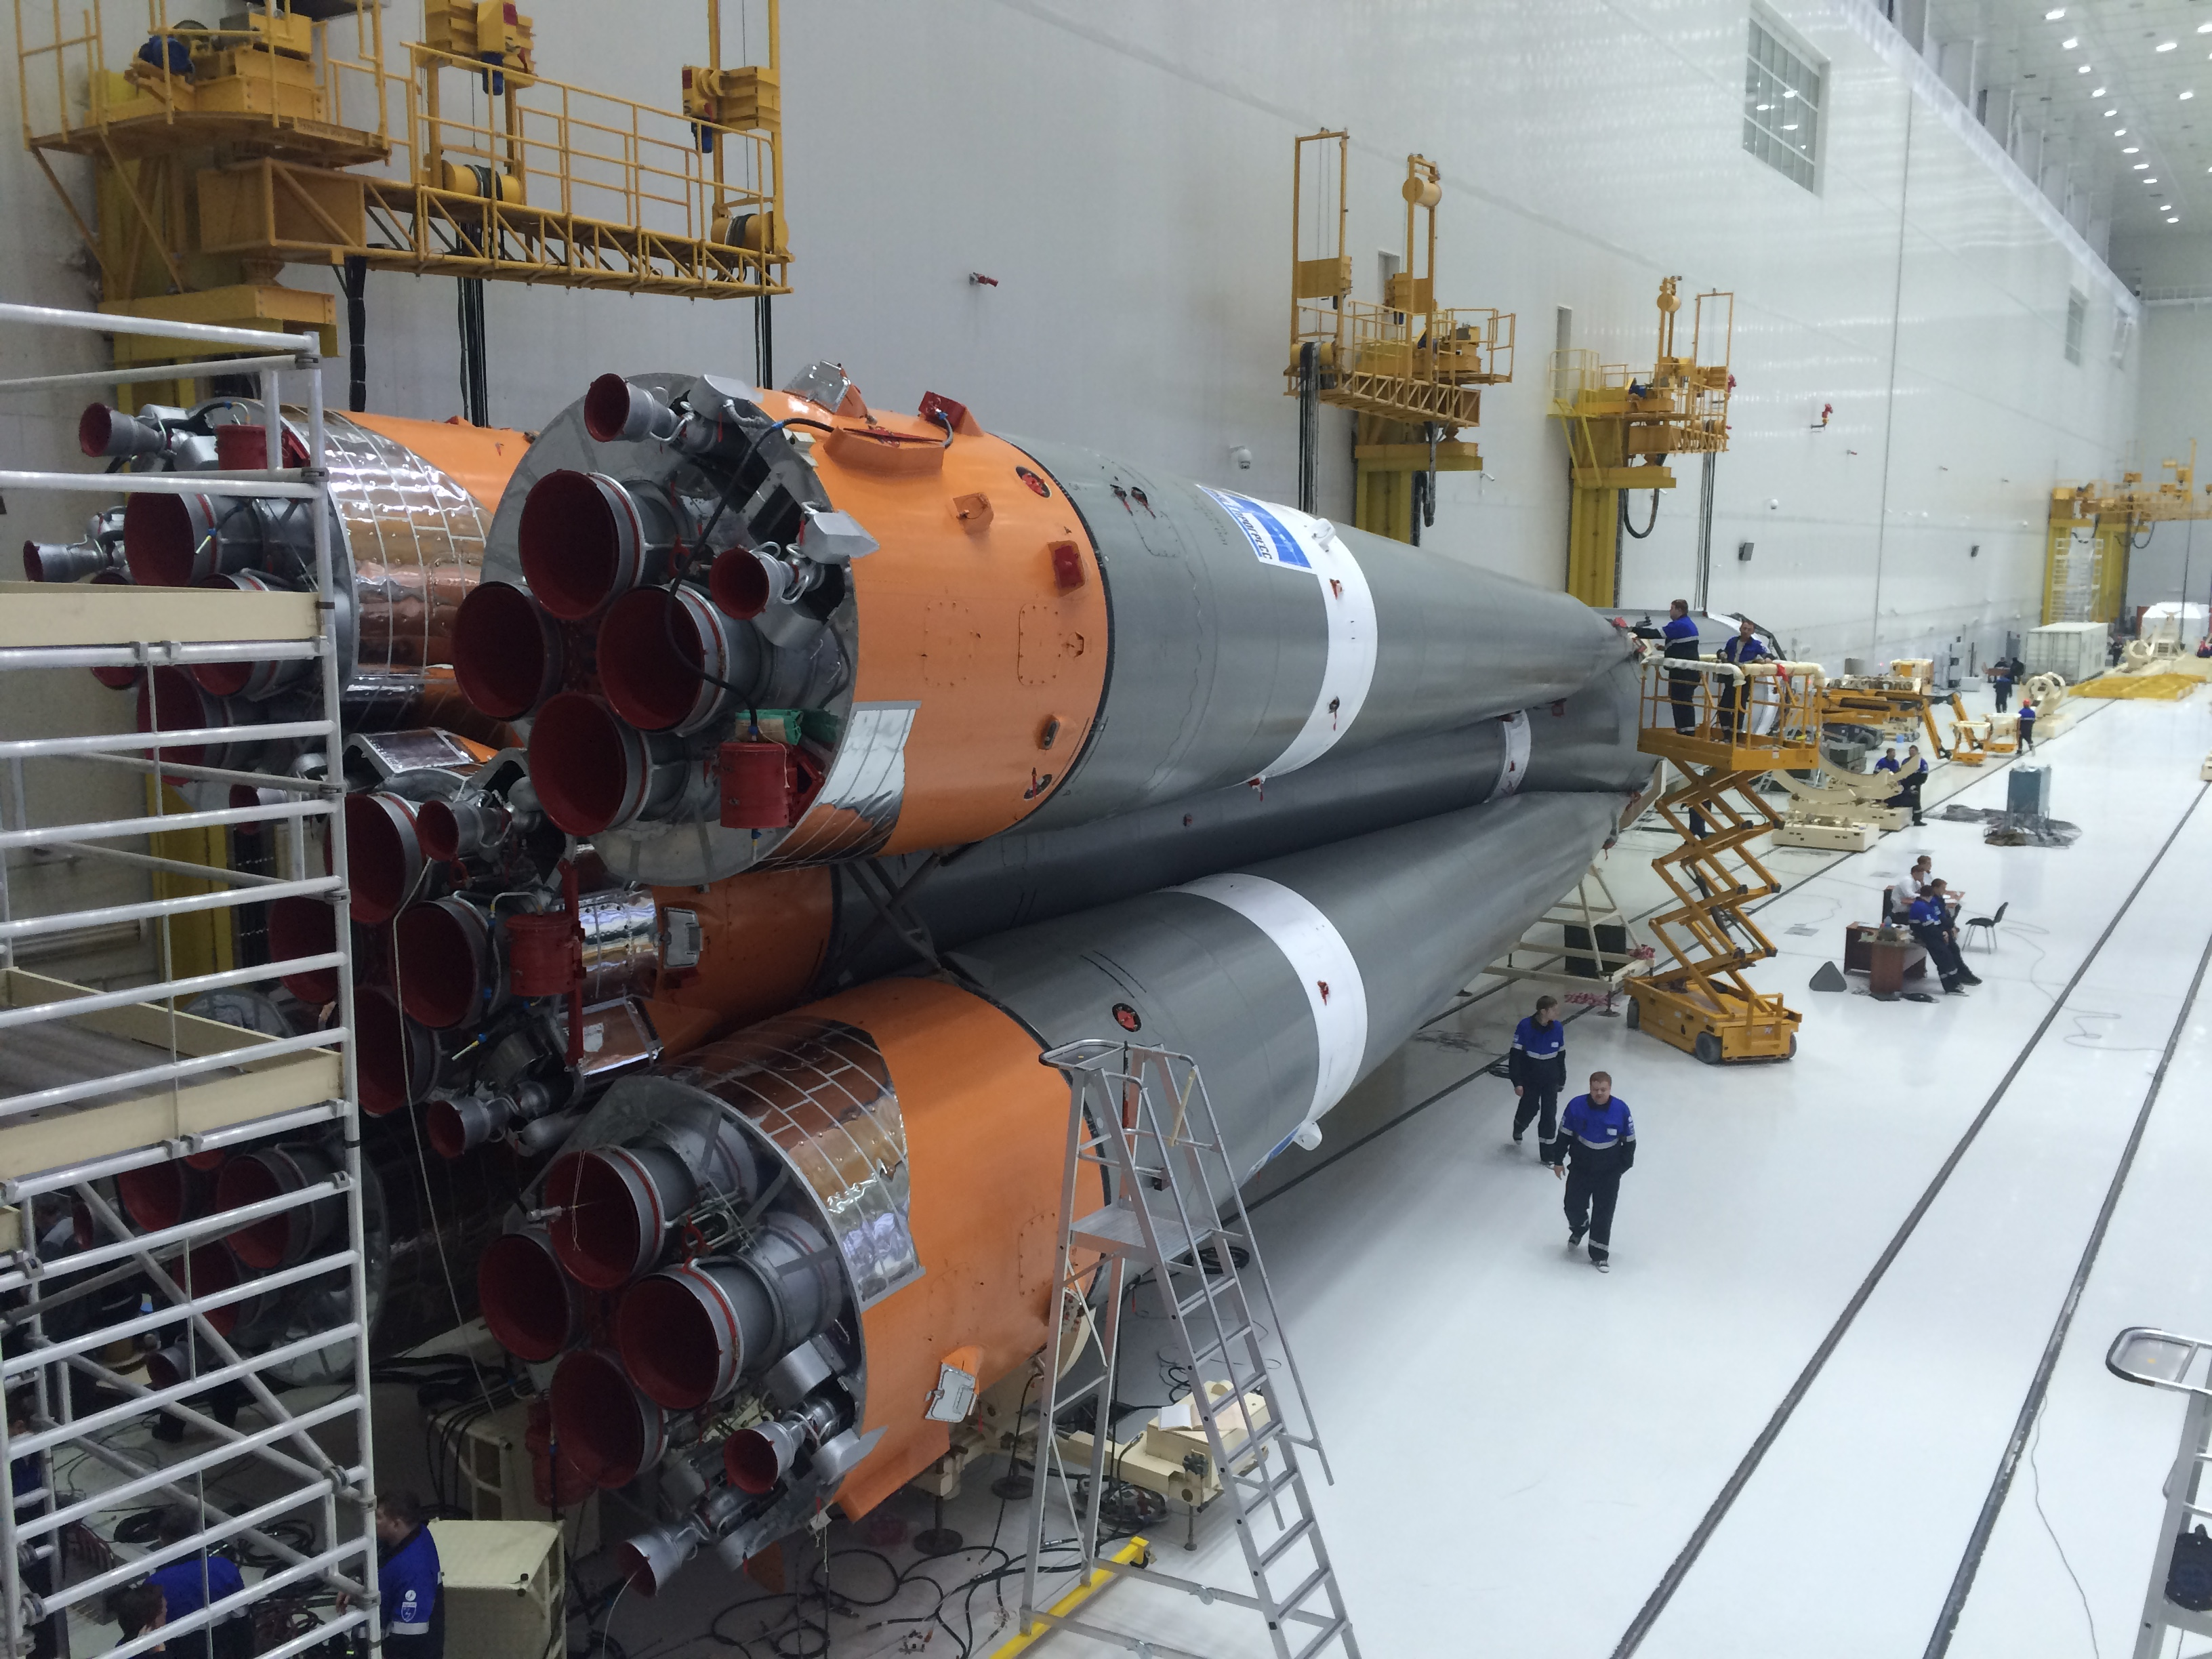 The three-stage Soyuz-2.1a rocket is assembled inside a hangar at the Vostochny Cosmodrome in Russia's Far East. Credit: Roscosmos